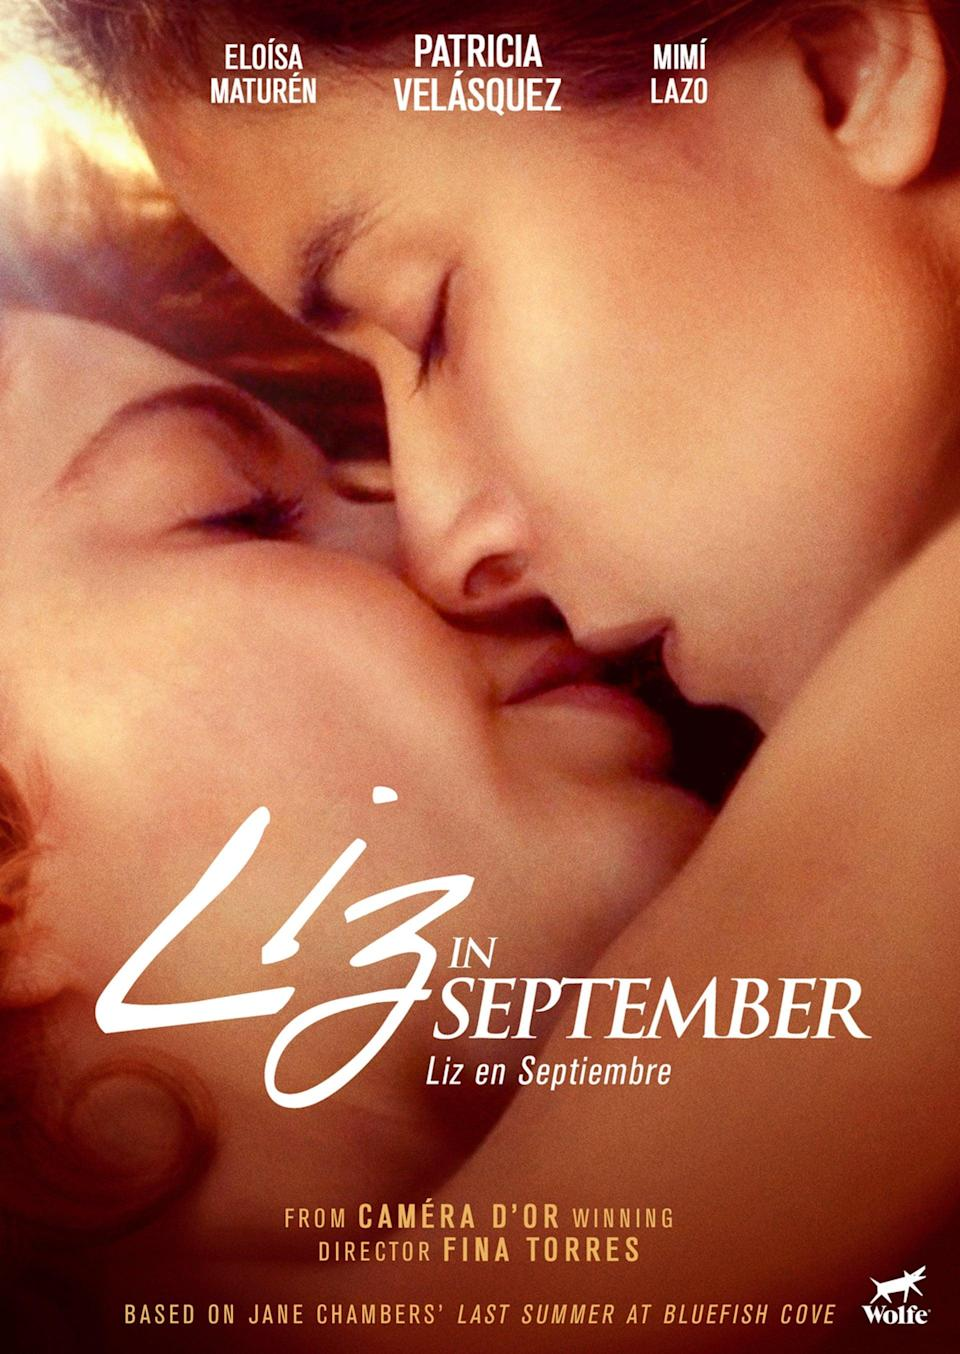 "<p>In this sexy drama, a young woman forms a strong bond with a woman she meets on a trip. Liz and Eva dive into an alluring romance, and along the way face struggles, secrets, and steamy moments.</p> <p><a href=""https://www.hulu.com/movie/liz-in-september-59a73887-ccd4-4726-ac31-287dece37889"" class=""link rapid-noclick-resp"" rel=""nofollow noopener"" target=""_blank"" data-ylk=""slk:Watch Liz in September on Hulu now."">Watch <strong>Liz in September</strong> on Hulu now.</a></p>"